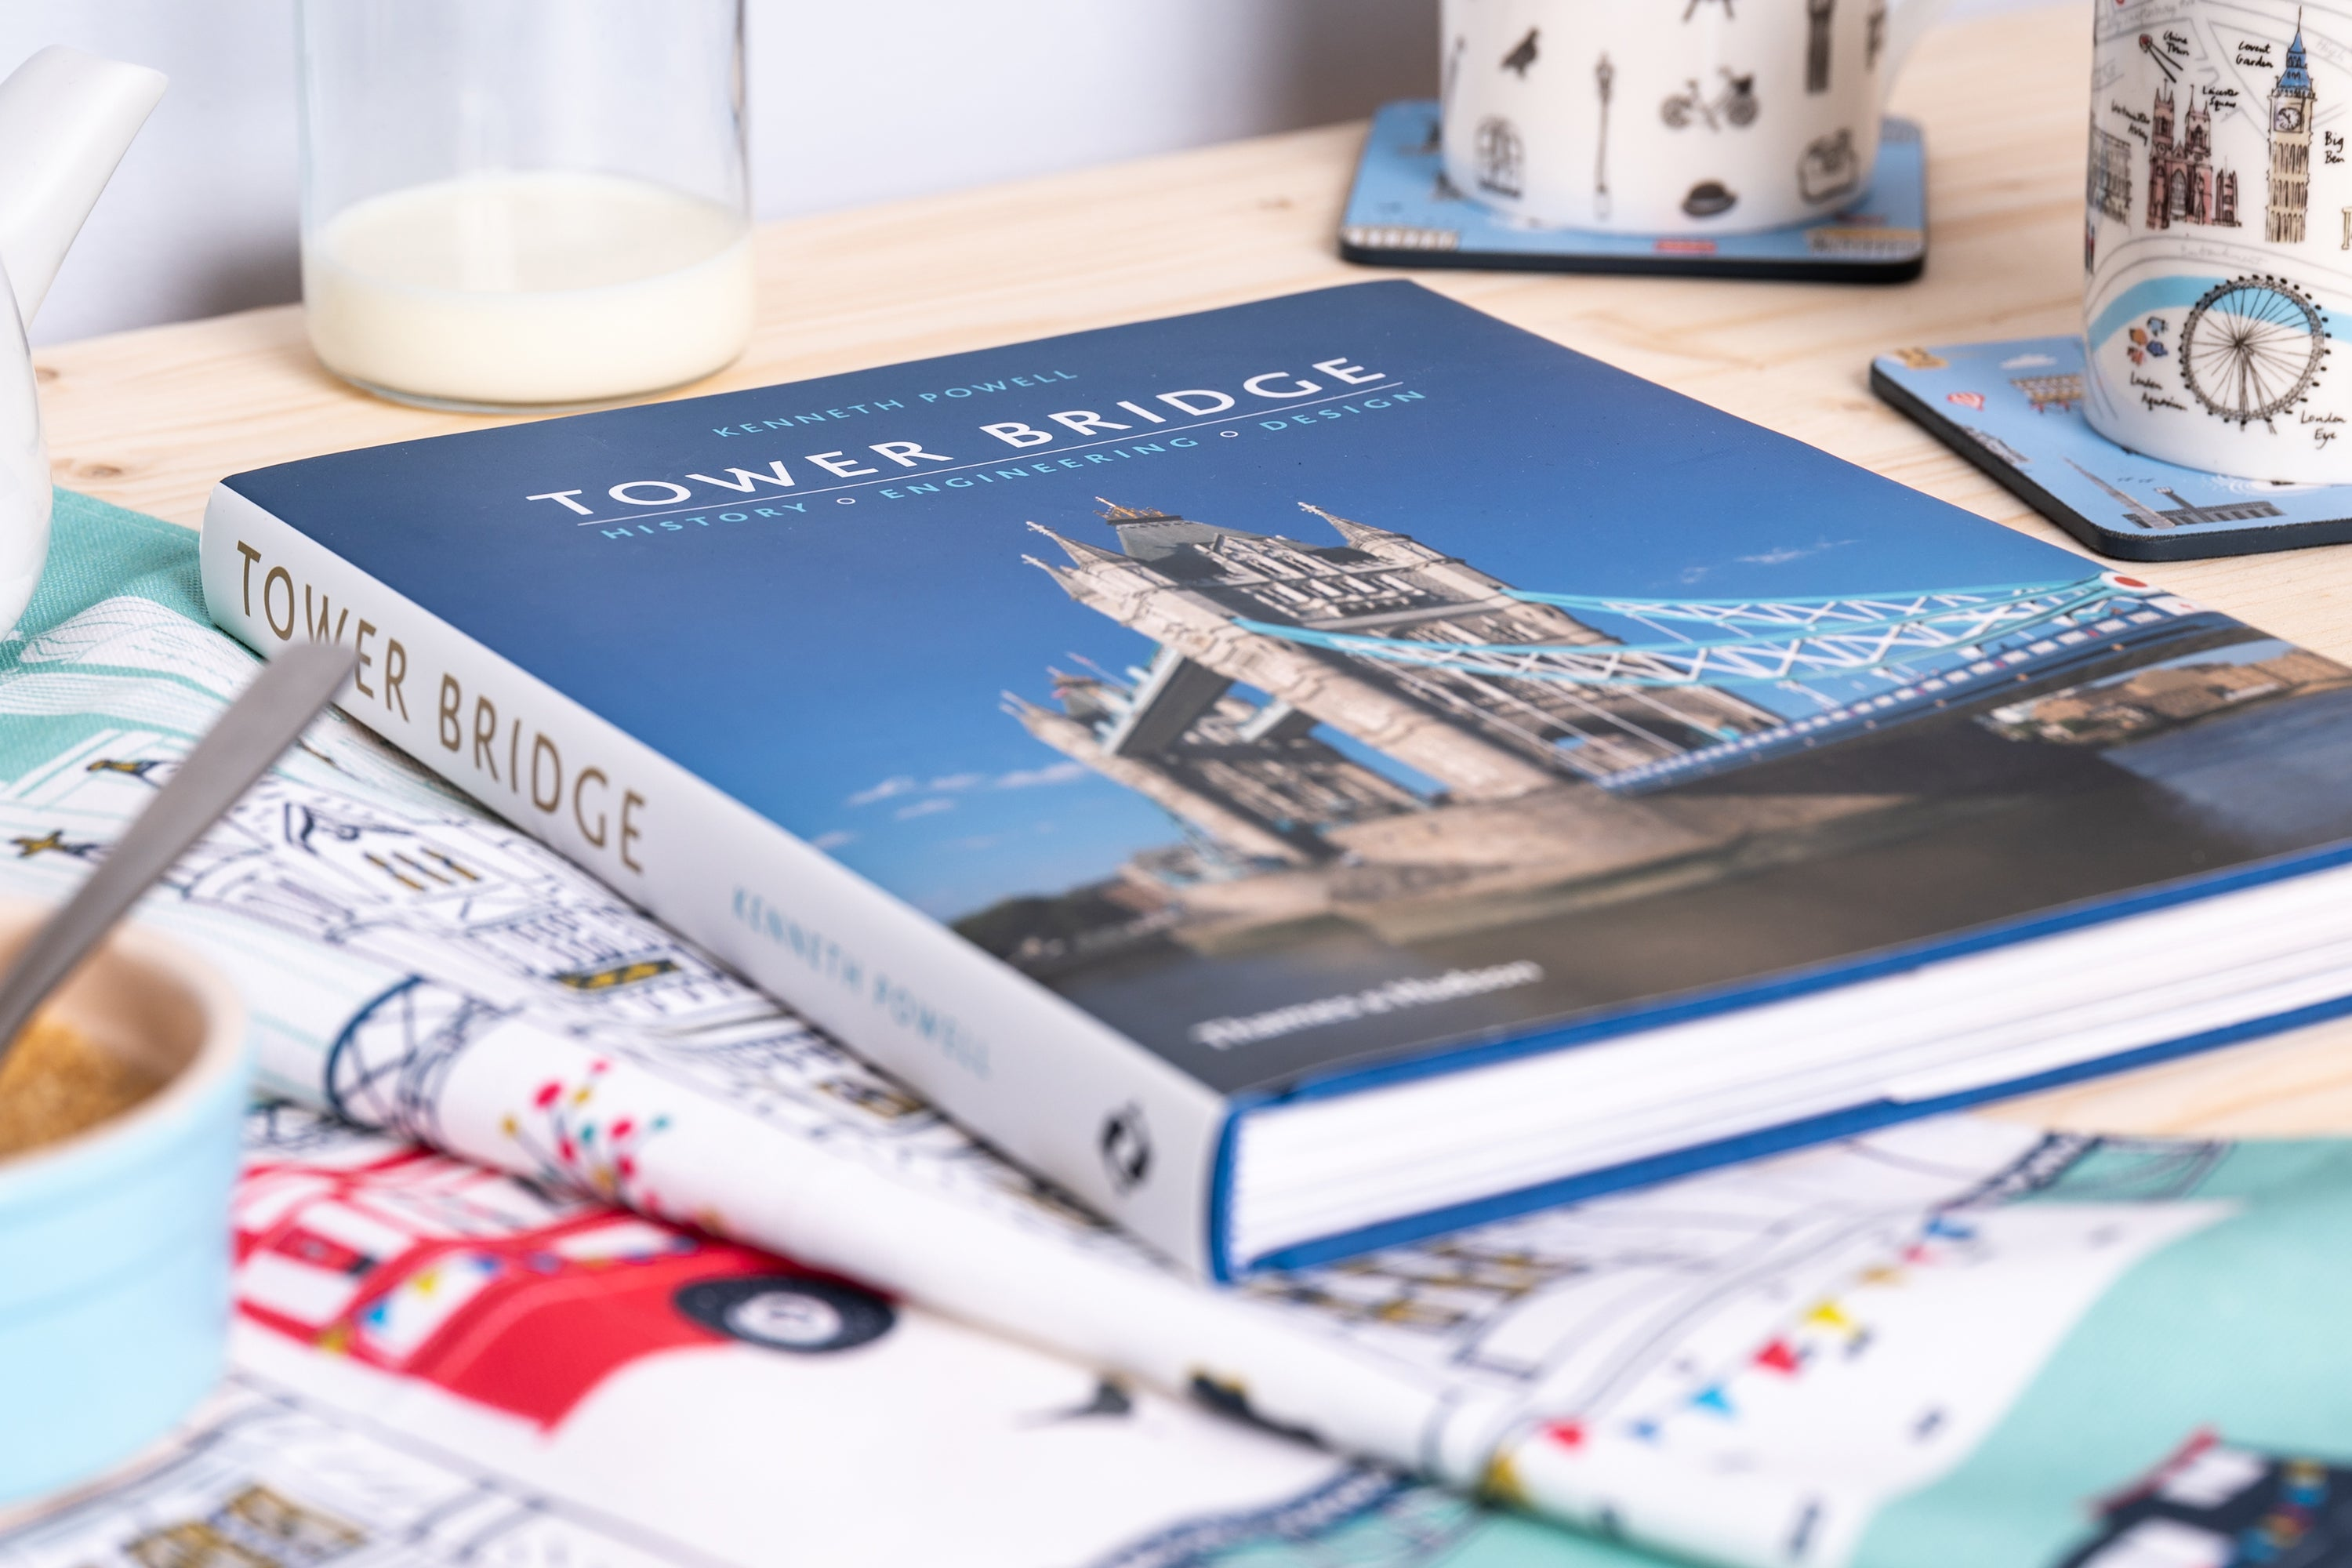 The definitive hardcover book on Tower Bridge is available from our Summer Sale